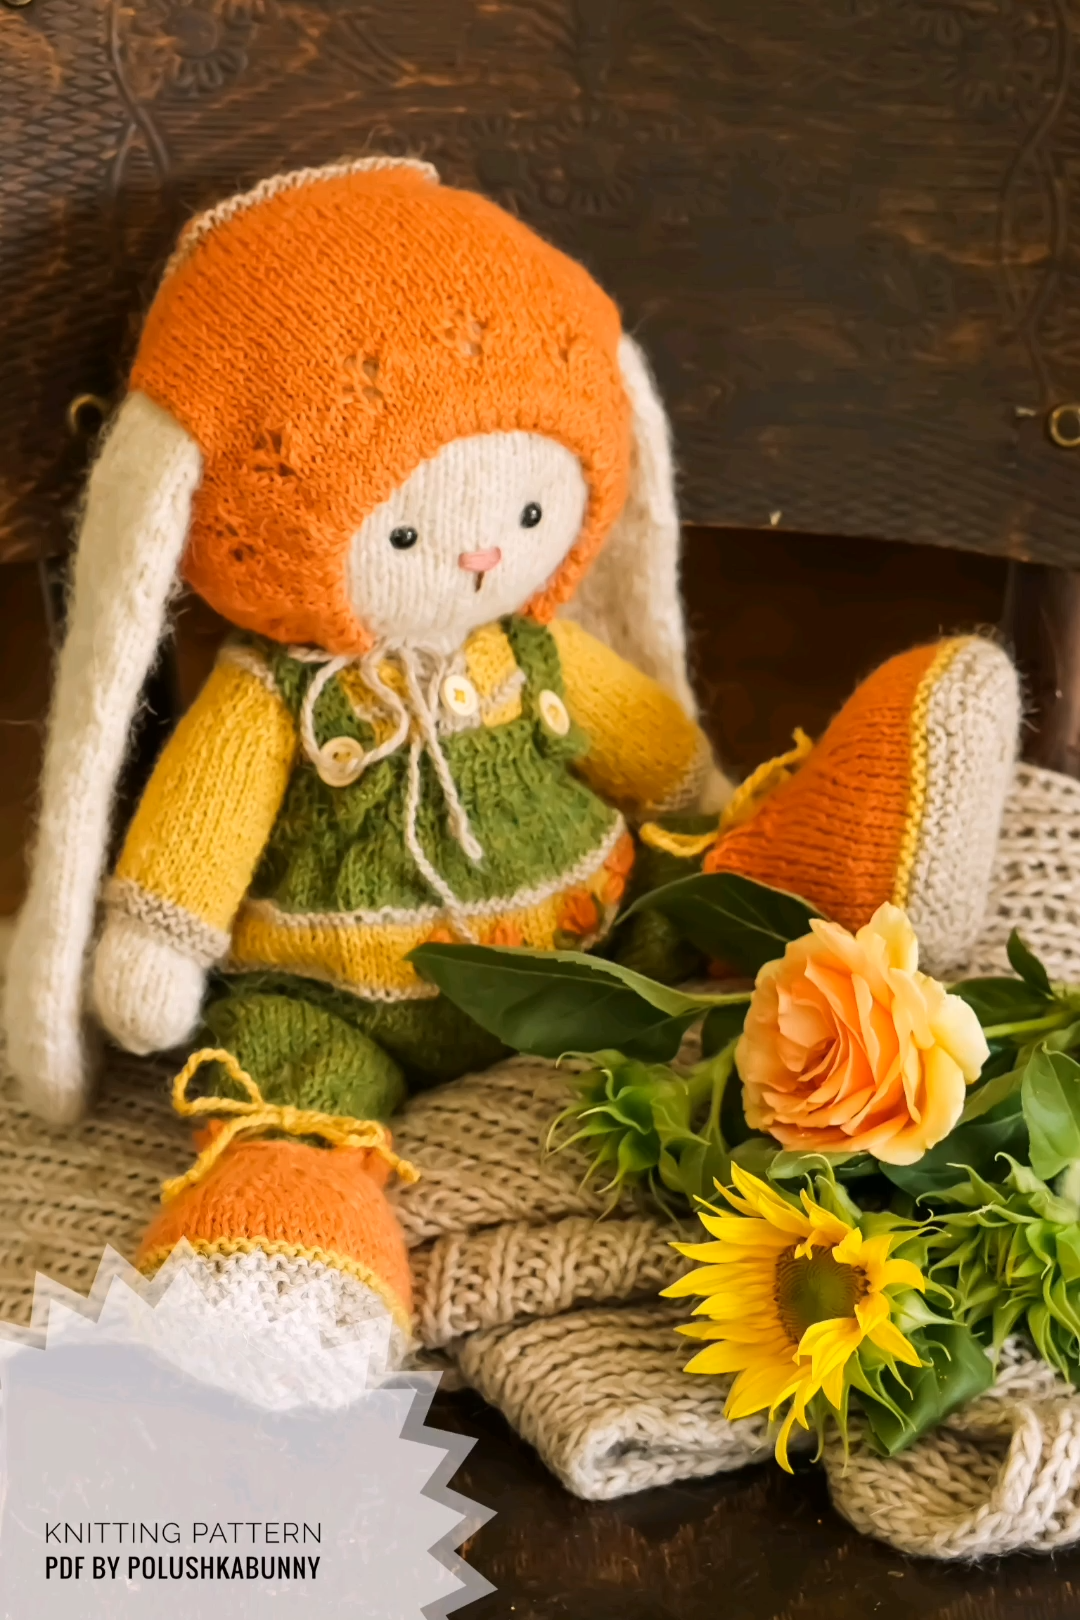 Photo of Knitting Pattern pdf Cozy Outfit Knitting Pattern by Polushkabunny #knitting #pattern #easter #bunny